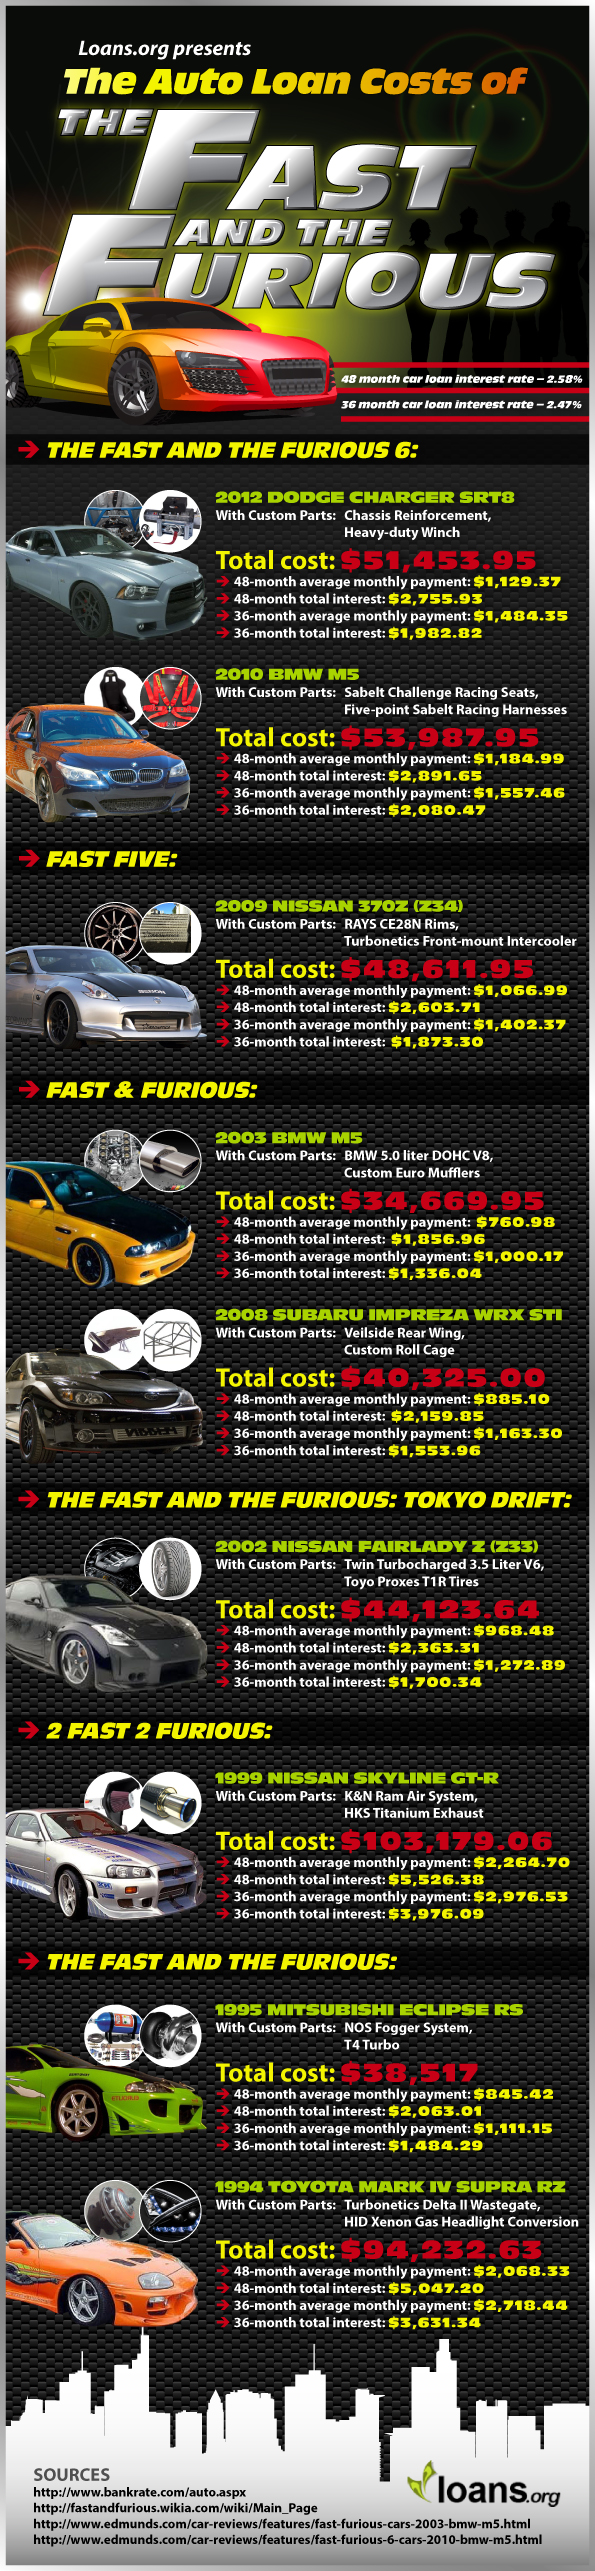 The Auto Loan Costs of The Fast and the Furious